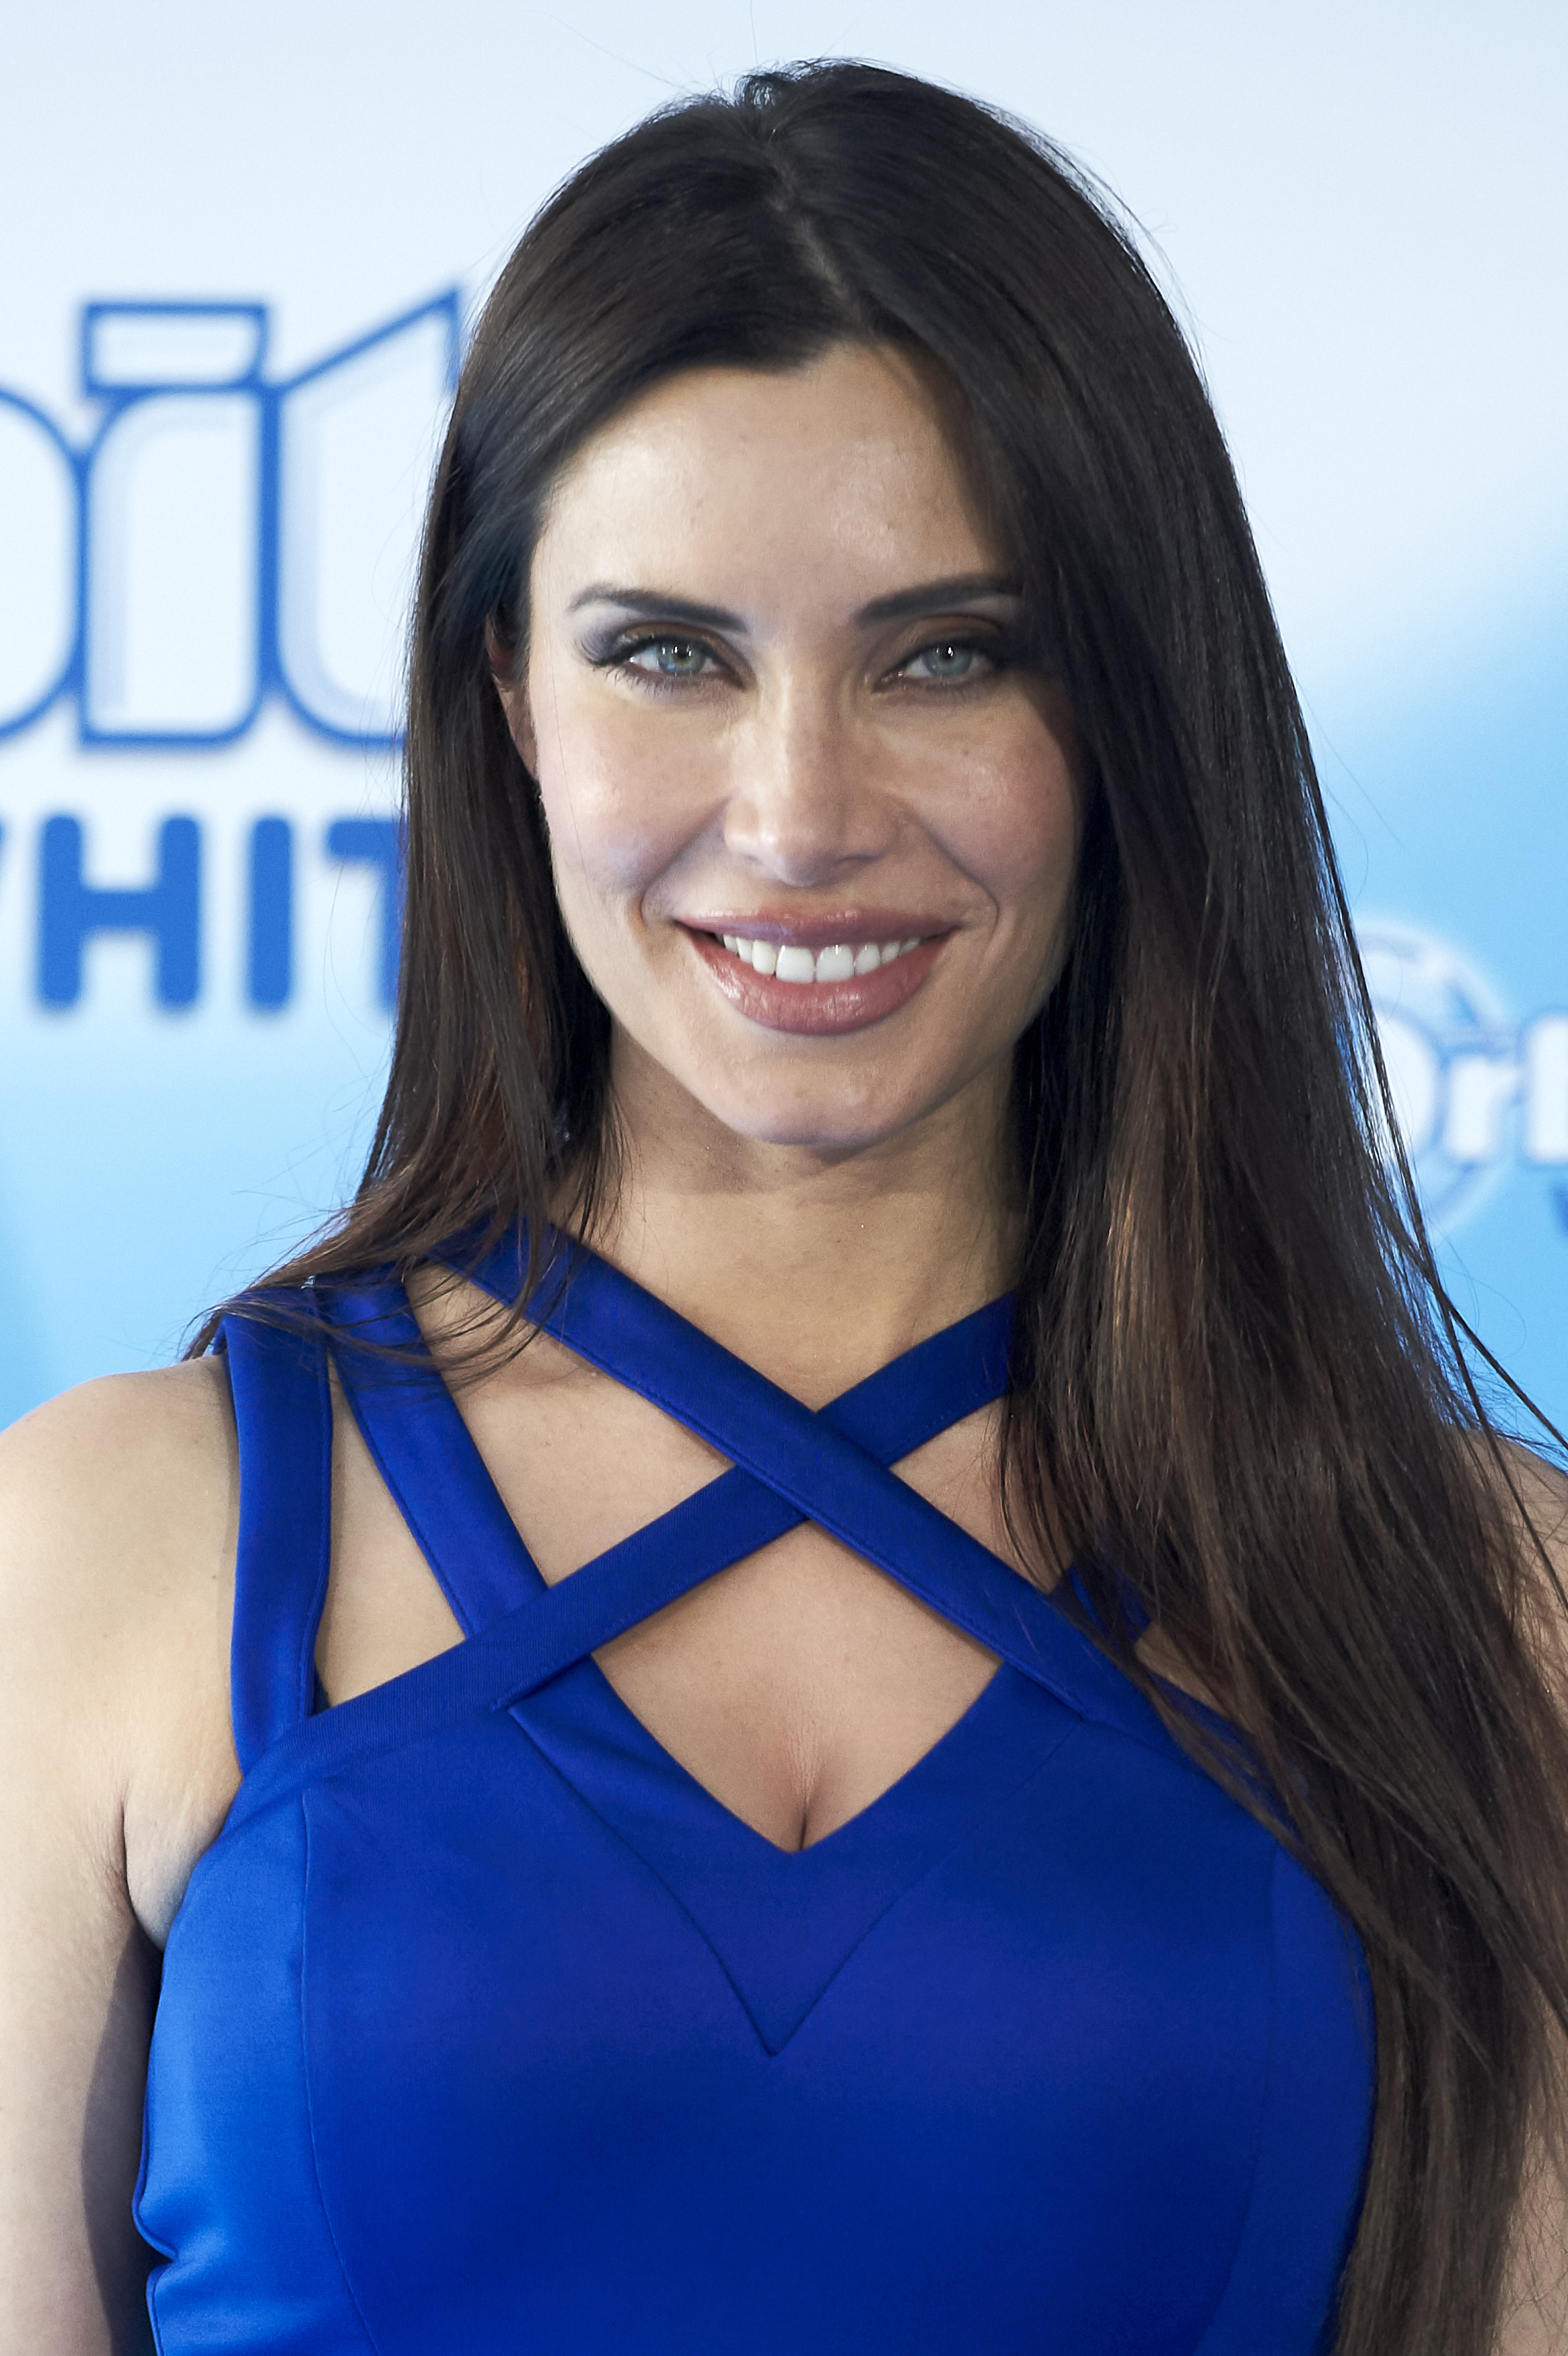 MADRID, SPAIN - MAY 09: Pilar Rubio attends 'Buscamos La Sonrisa Orbit White' competition at Club Allard restaurant on May 9, 2018 in Madrid, Spain. (Photo by Carlos Alvarez/Getty Images)